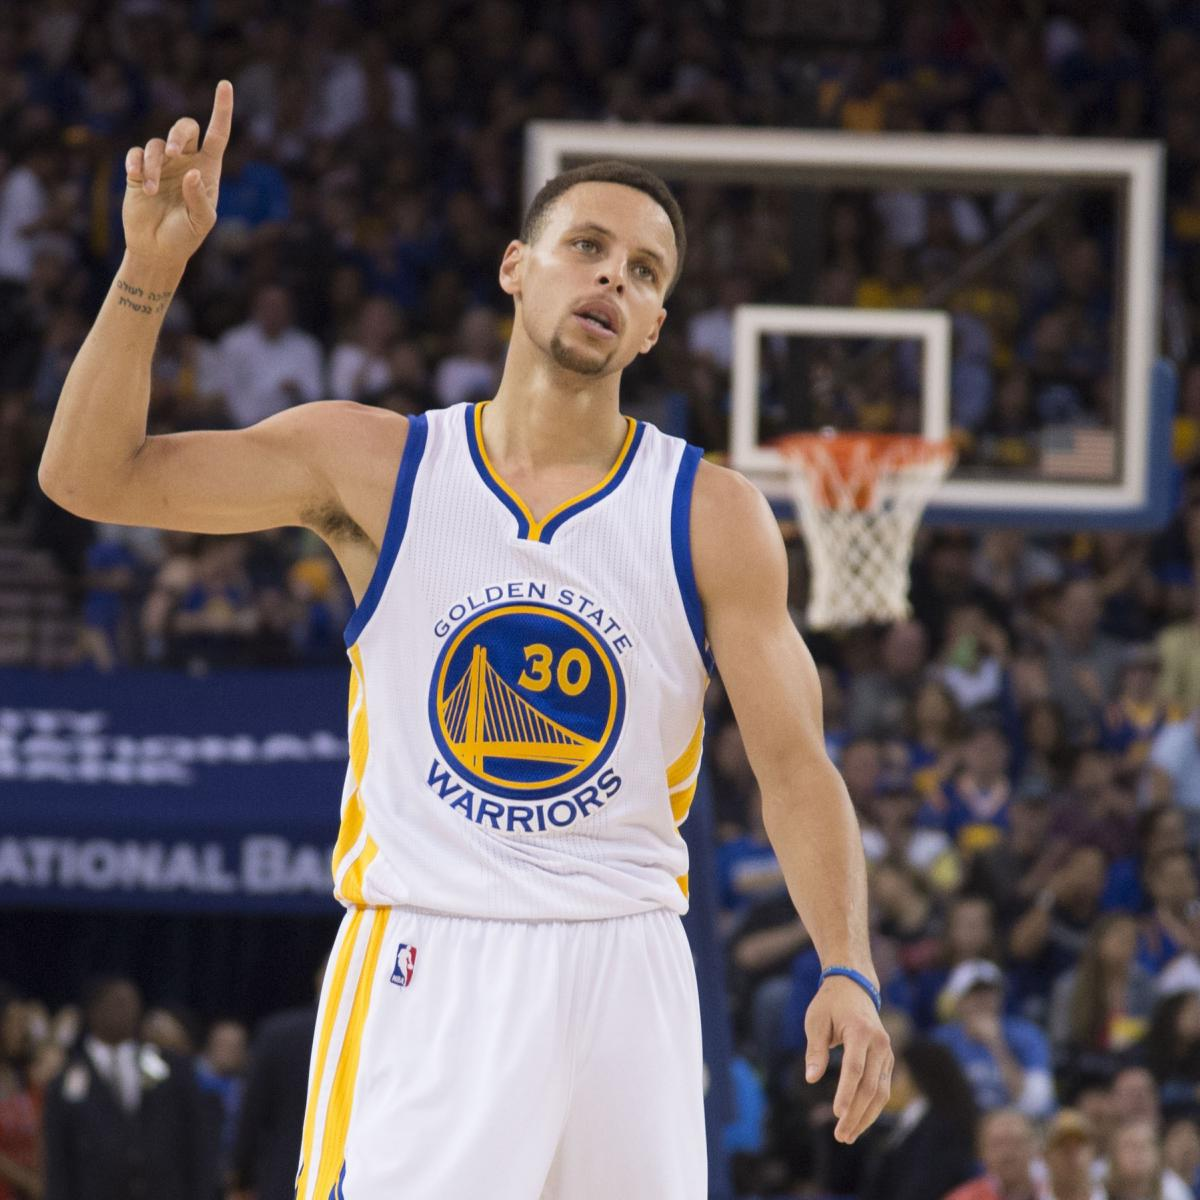 Washington Wizards Vs. Golden State Warriors: Live Score